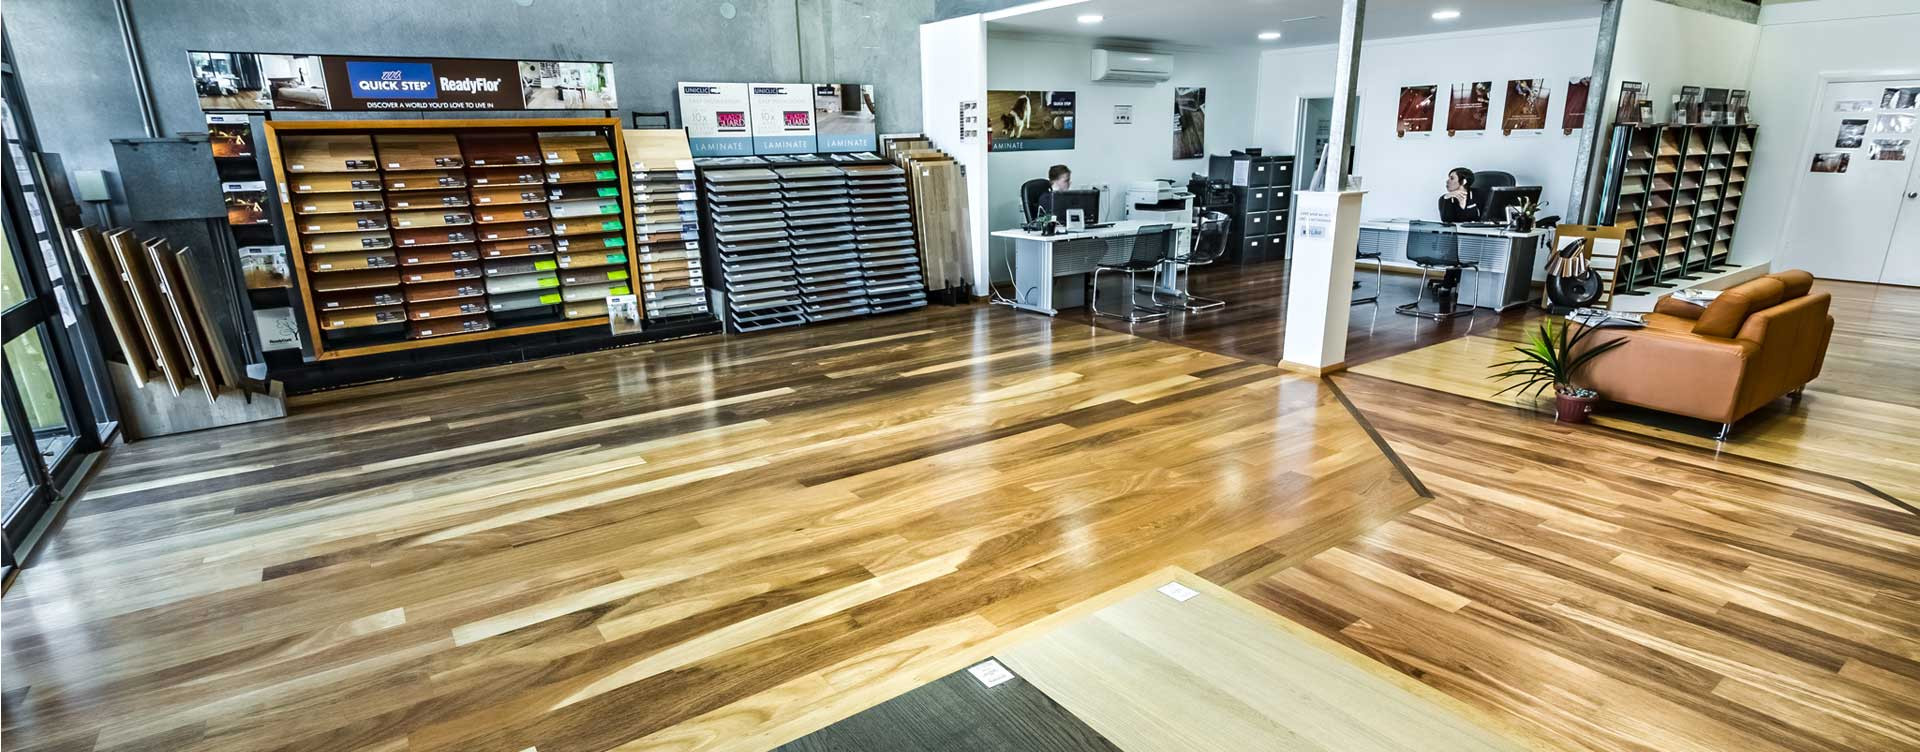 can i glue hardwood flooring to concrete of timber flooring perth coastal flooring wa quality wooden intended for thats why they call us the home of fine wood floors